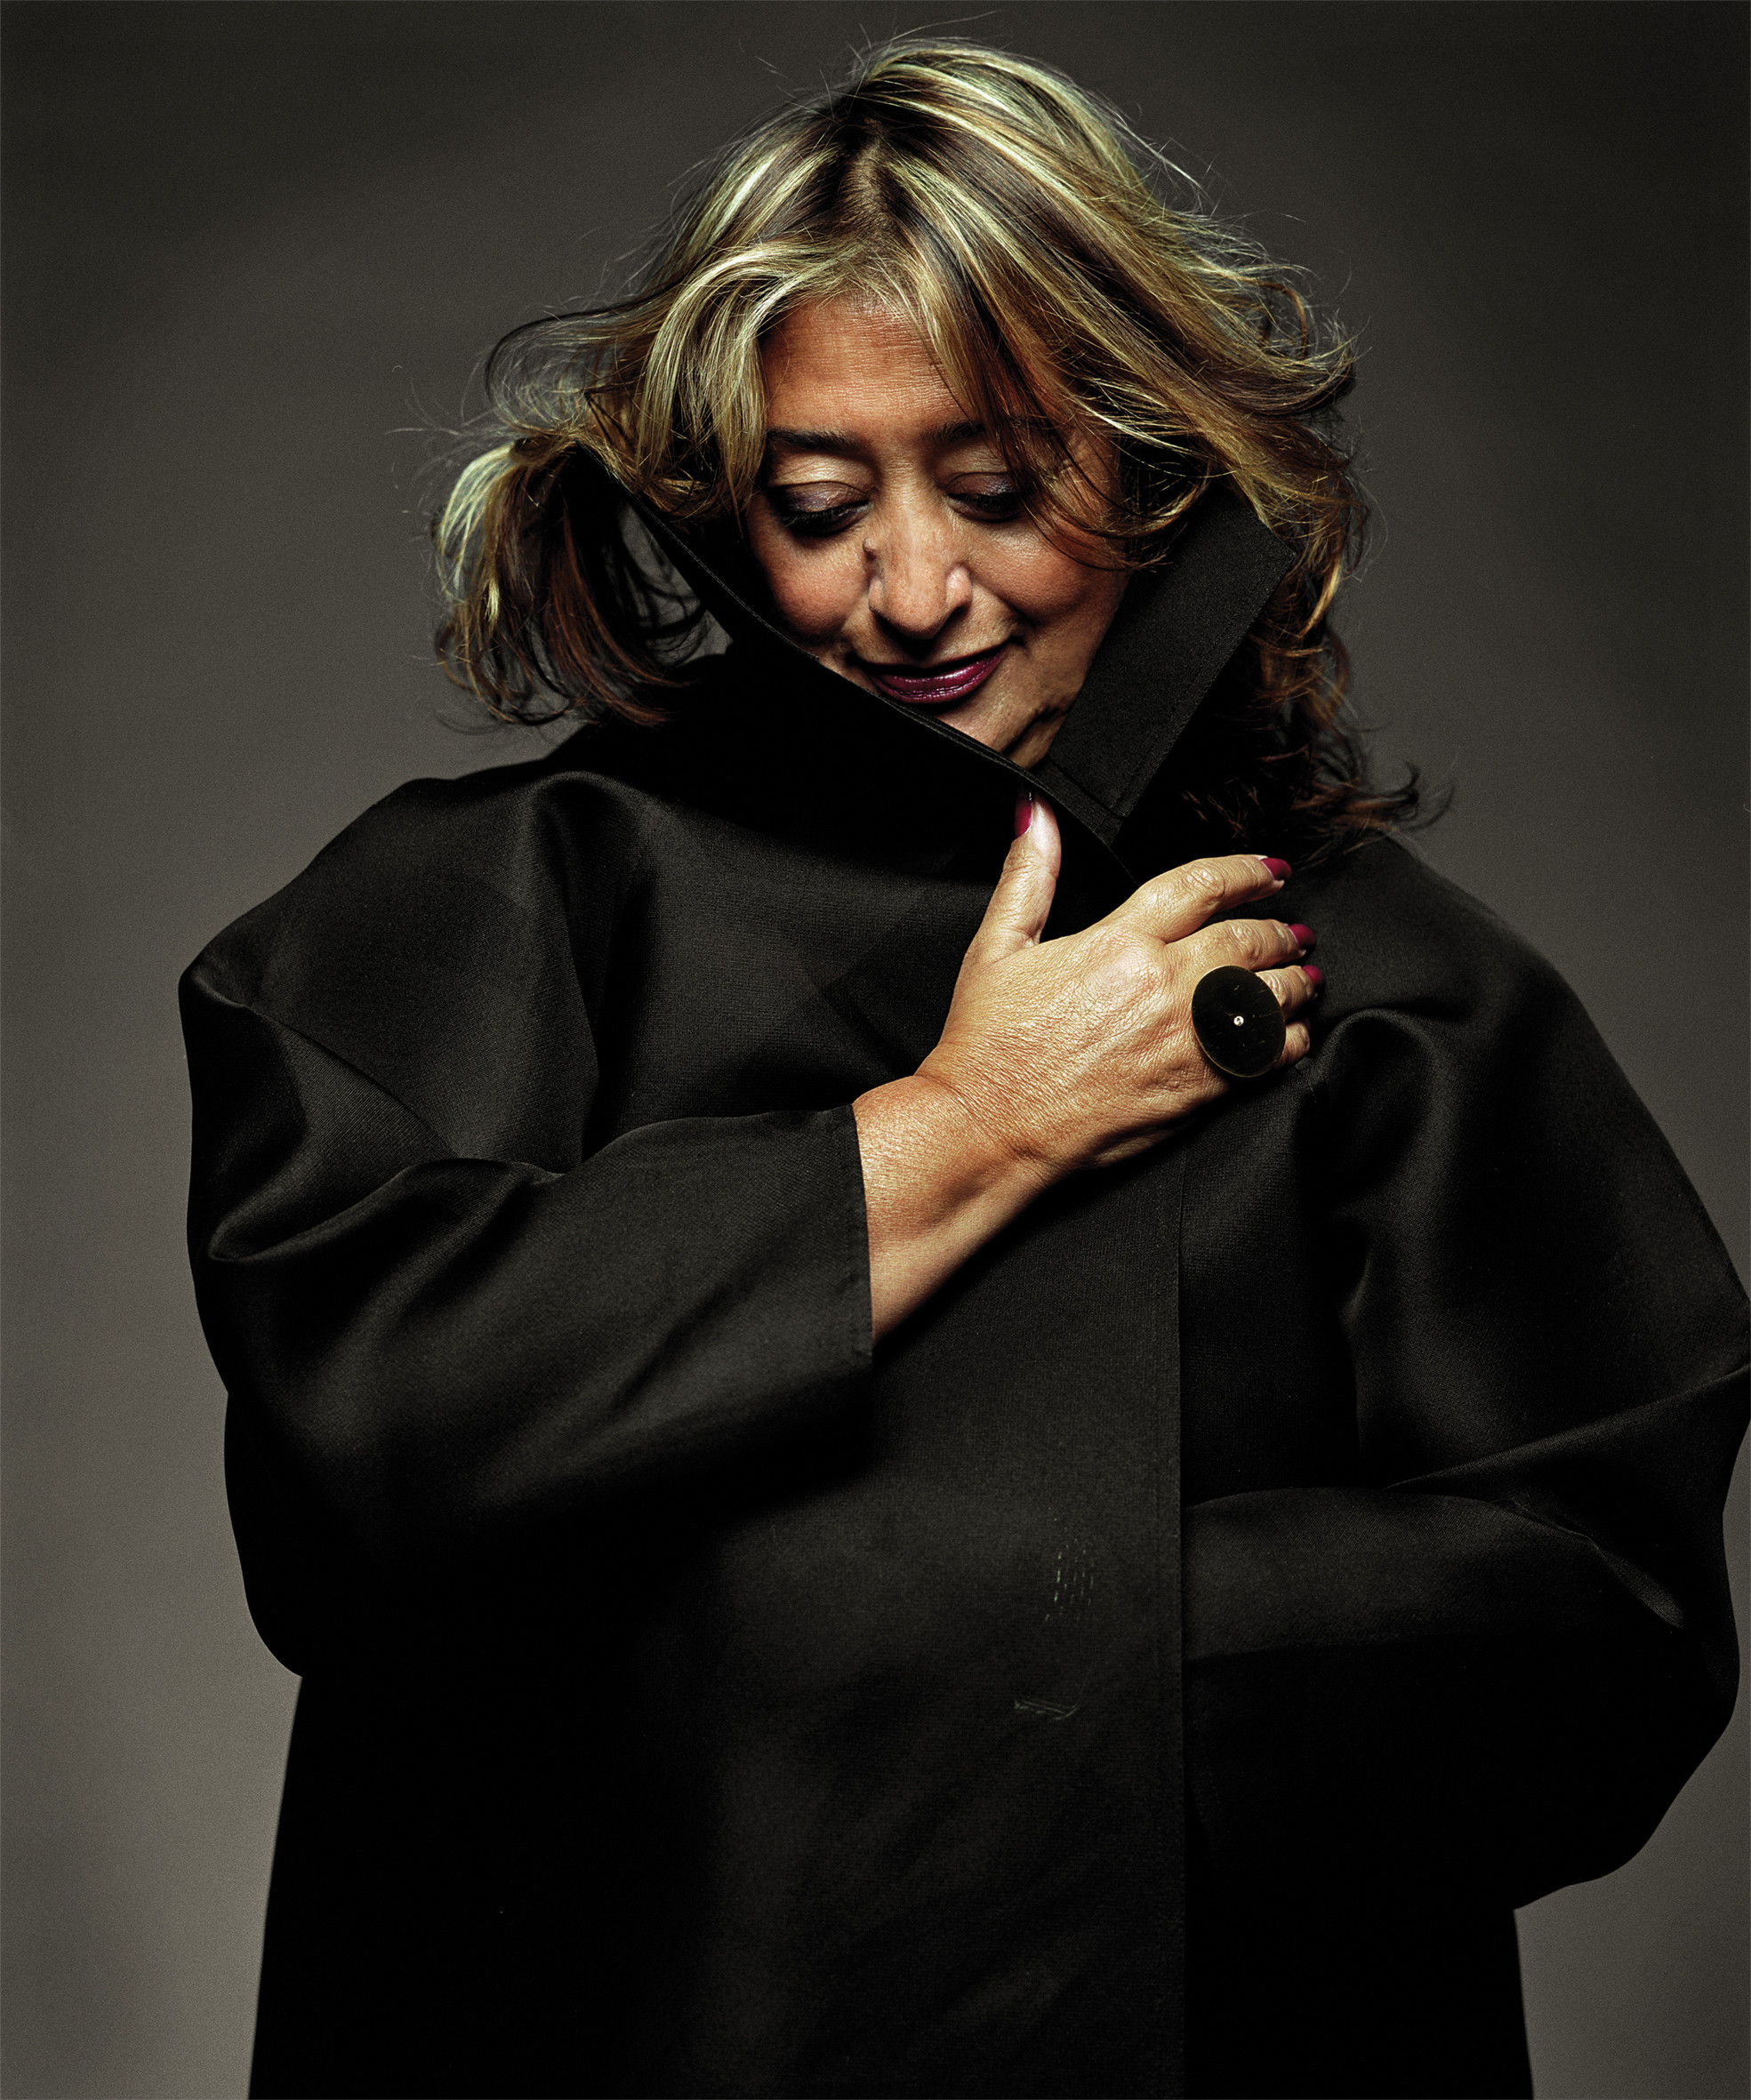 zaha hadid niemeyer had an innate talent for sensuality archdaily. Black Bedroom Furniture Sets. Home Design Ideas